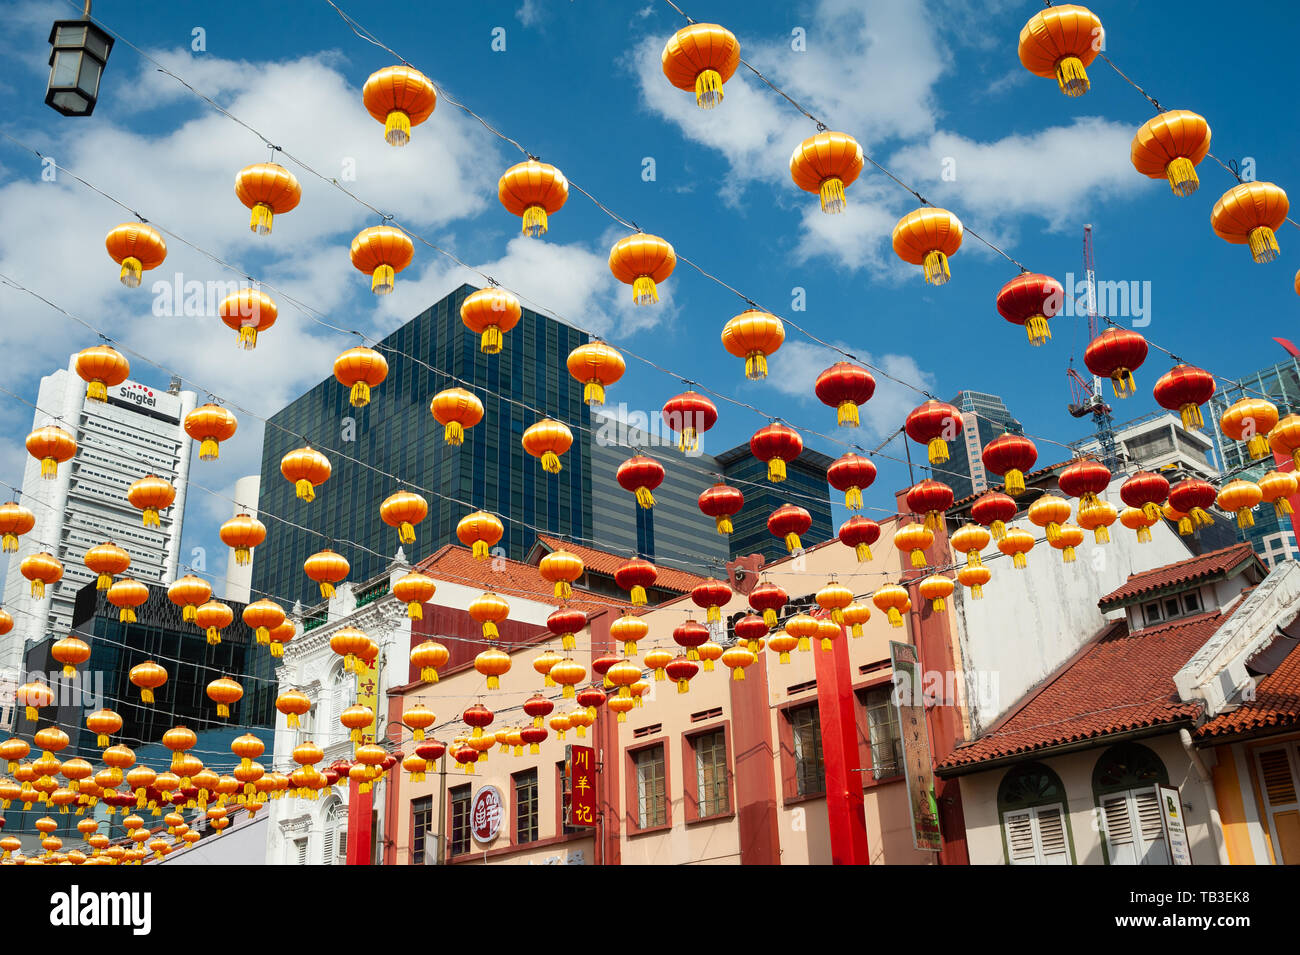 11.02.2019, Singapore, , Singapore - Annual street decoration with lanterns for the Chinese Lunar New Year festival along the South Bridge Road in Sin - Stock Image